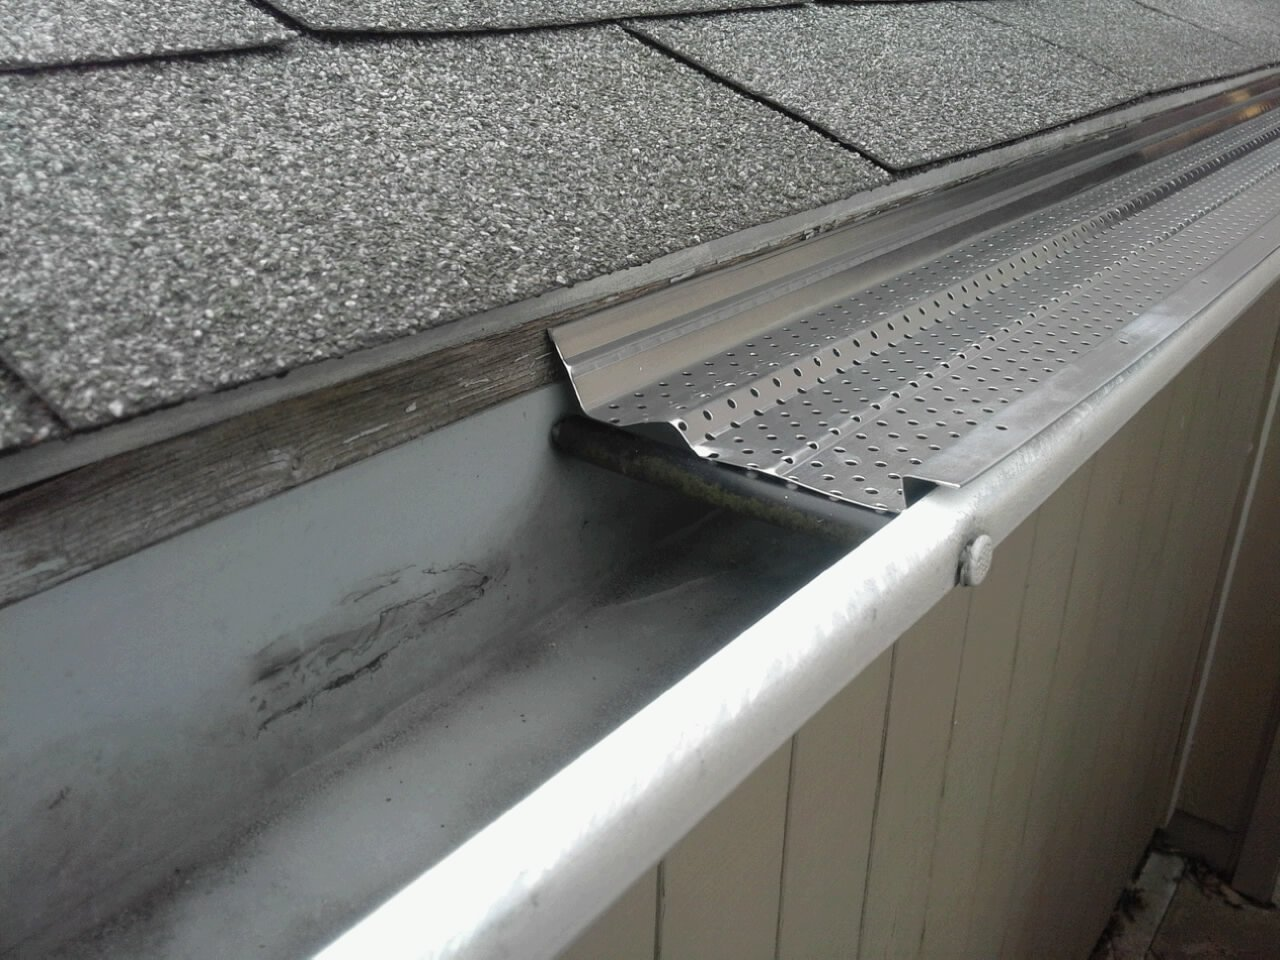 A-M Aluminum Gutter Guard 6'' - 50 feet by A-M Gutter Guard (Image #3)